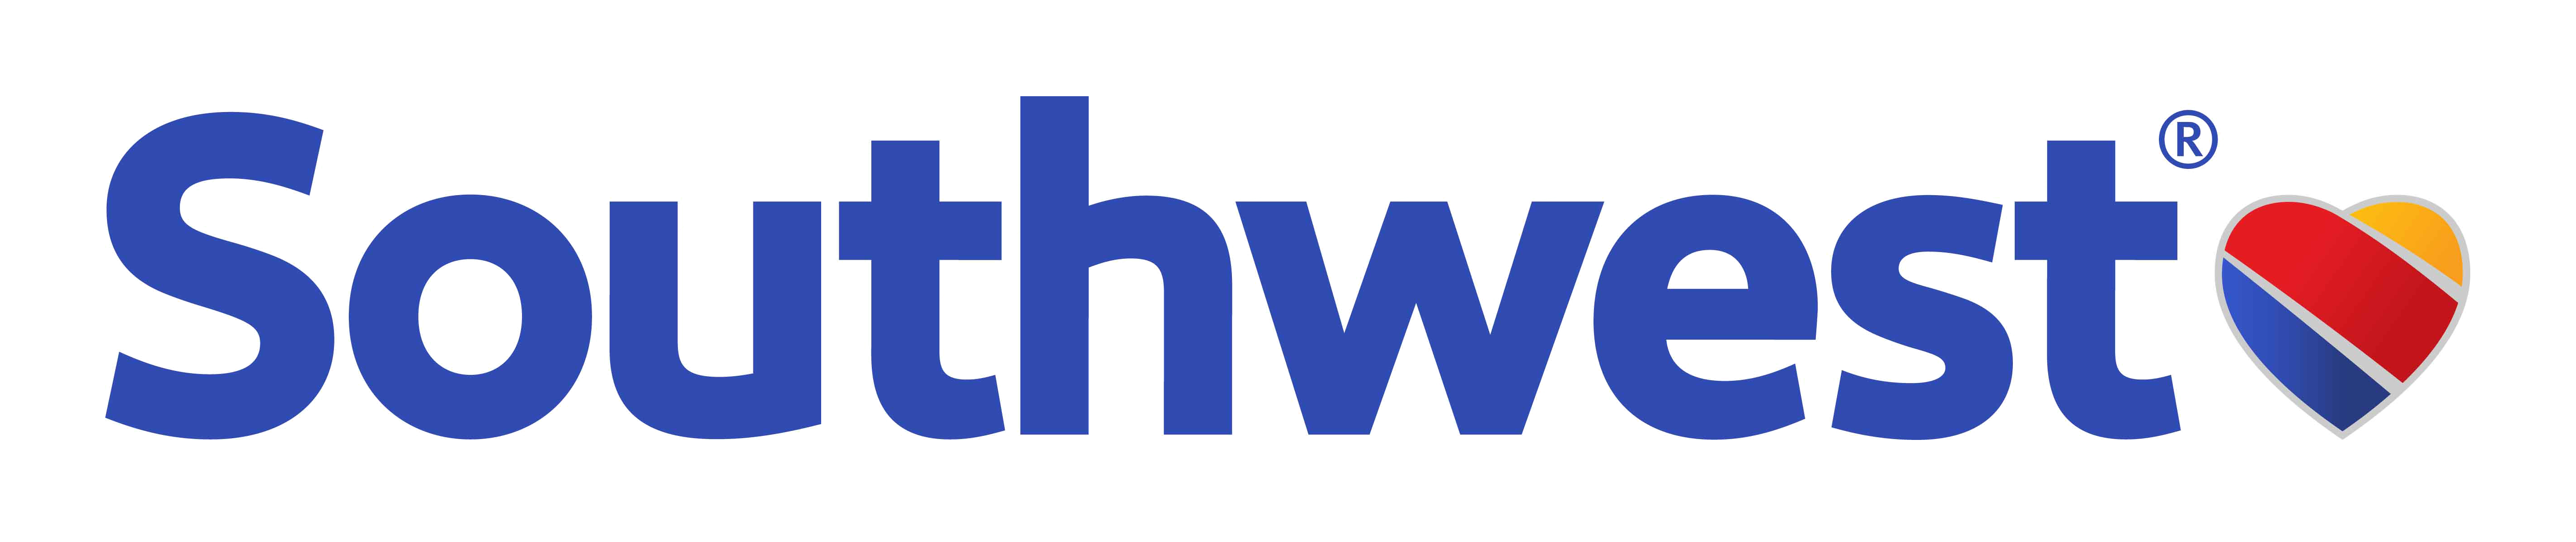 Southwest-Airlines_Isologotype_PNG-Transparent